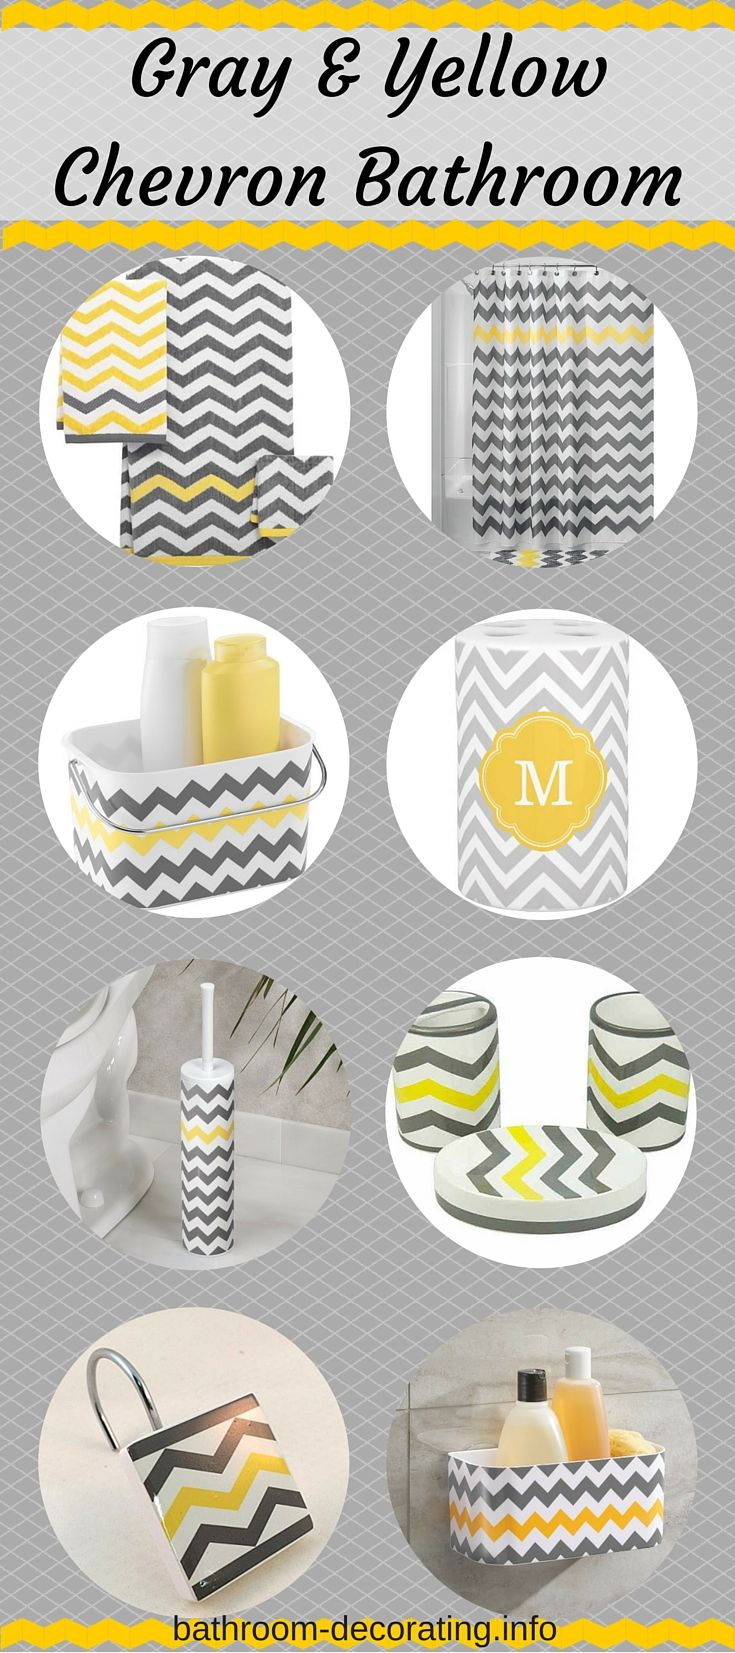 Chevron bathroom decor chevron bathroom decor chevron for Bathroom decor yellow and gray